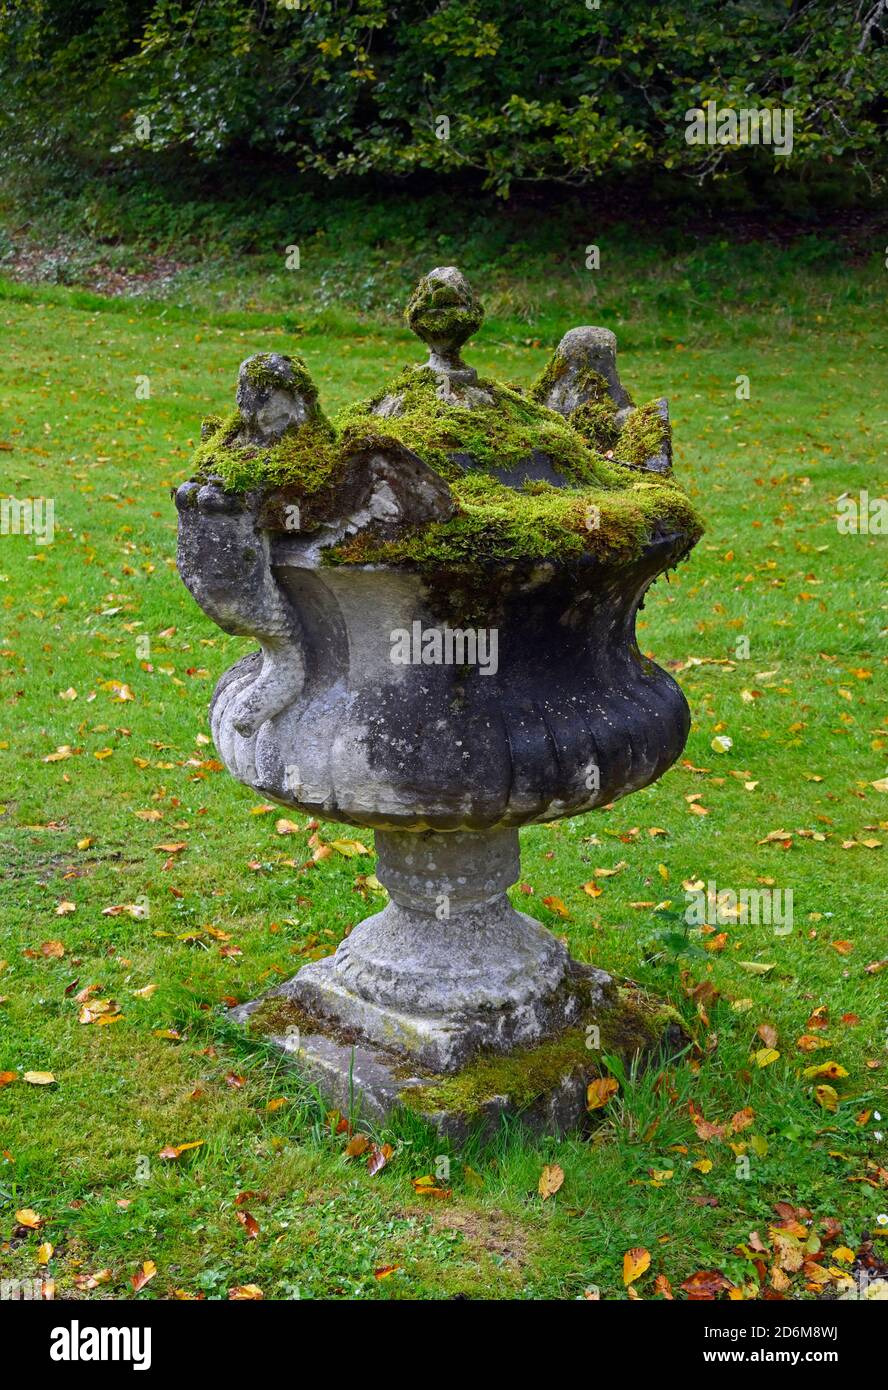 Ornamental stone urn with moss. Hopetoun House and Gardens, South Queensferry, Scotland, United Kingdom, Europe. Stock Photo